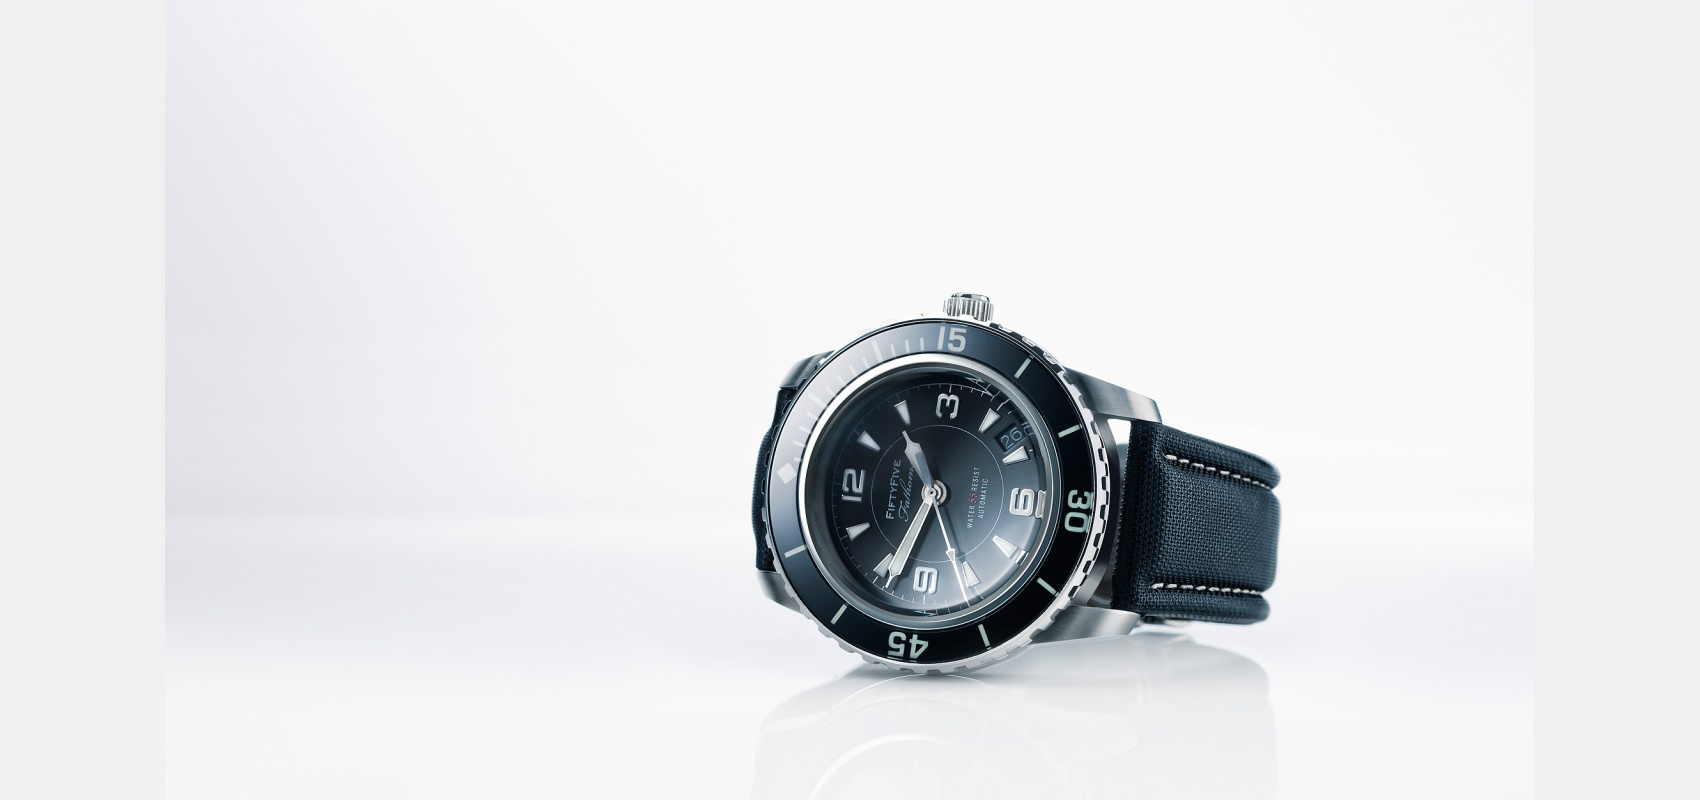 Product photography/Close up/Seiko Fifty Five Fathoms/FFF/ watch mod/horology